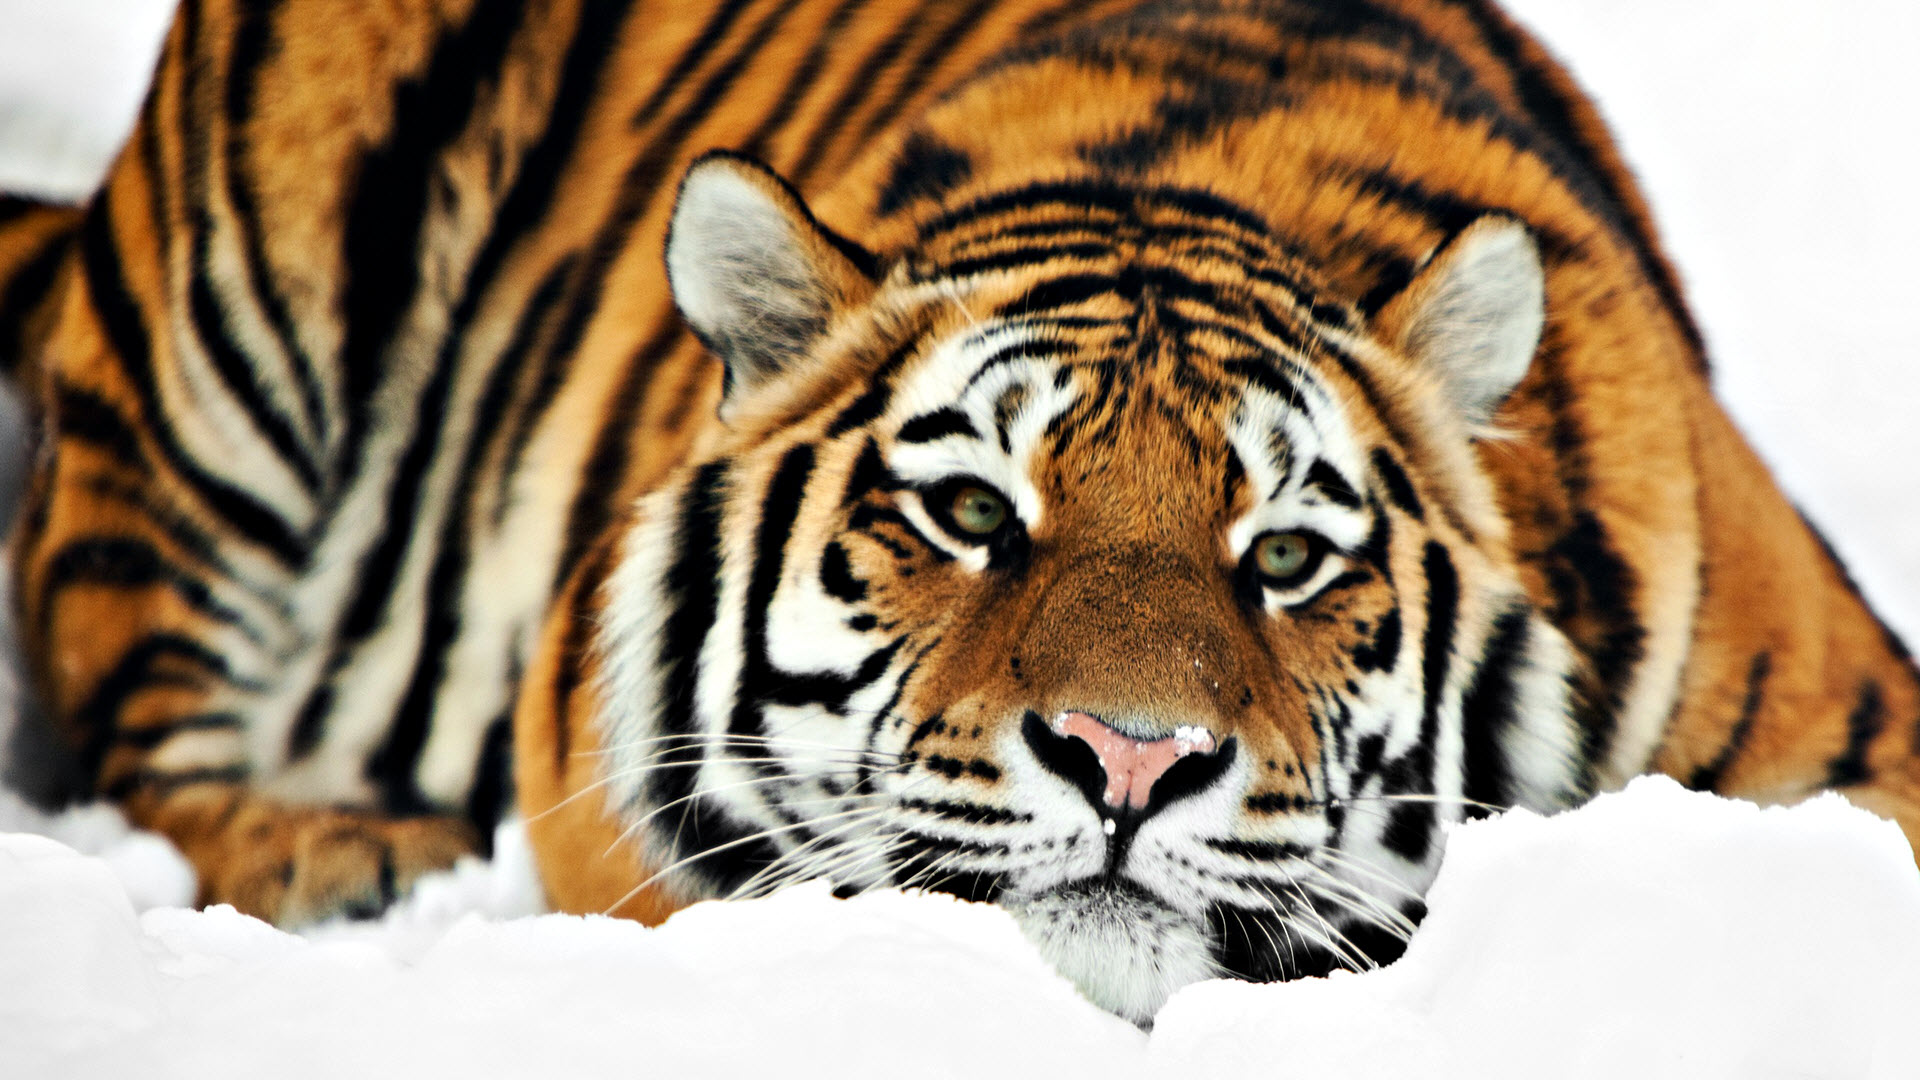 TIGER WALLPAPERS 1920x1080